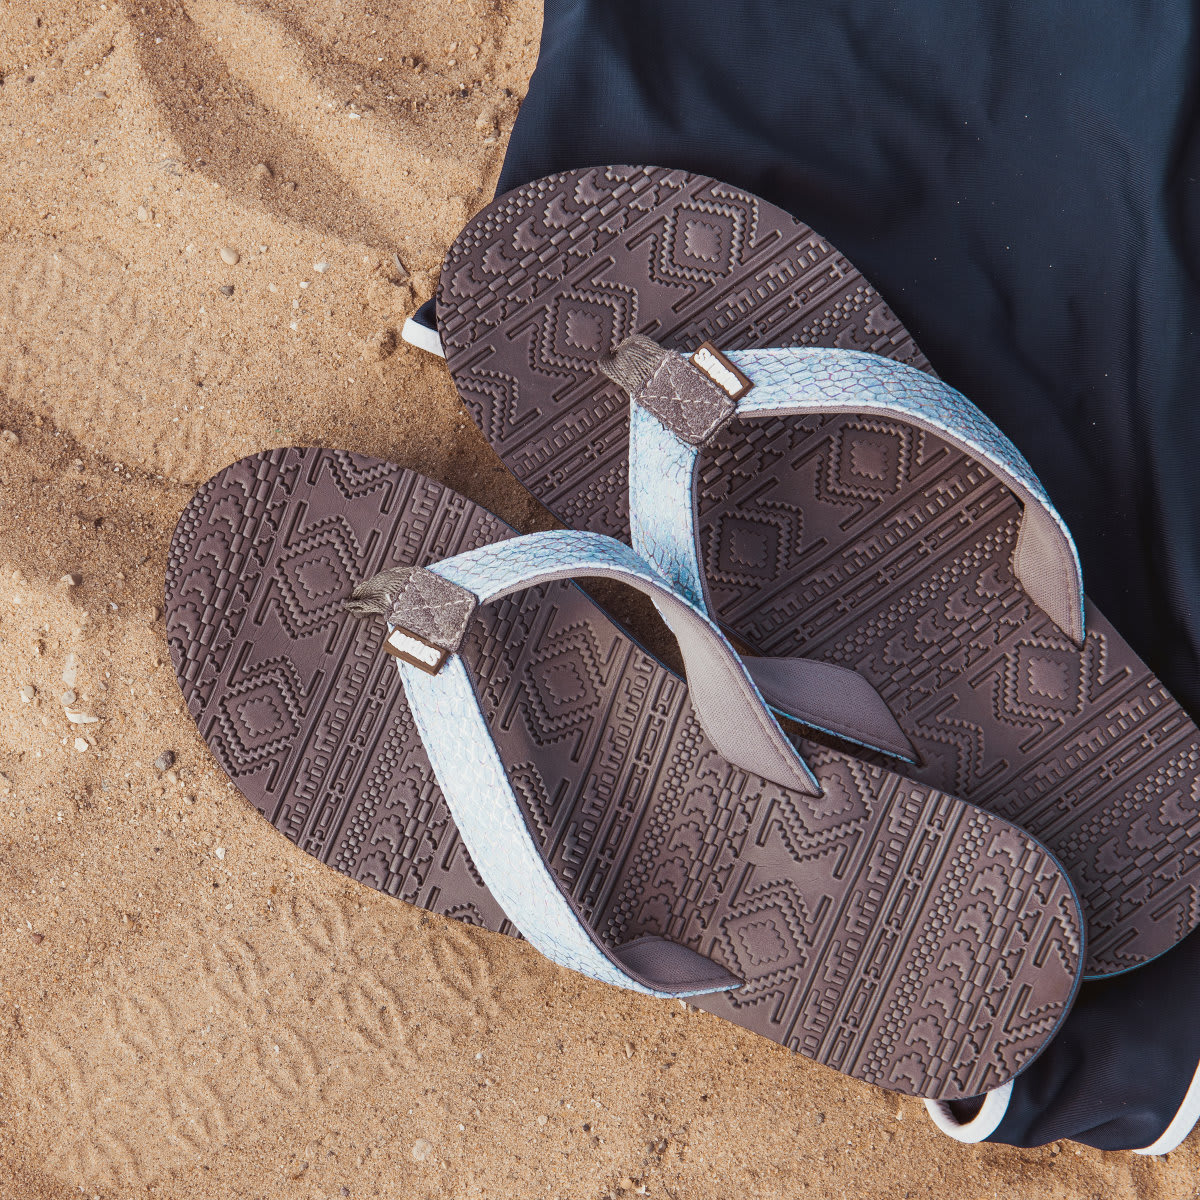 7c348c8042d3 Pick up the MUK LUKS ® Emma Flip Flops for just  14.99 + FREE Shipping!  Great reviews! (Currently  20 on Amazon) In 4 styles